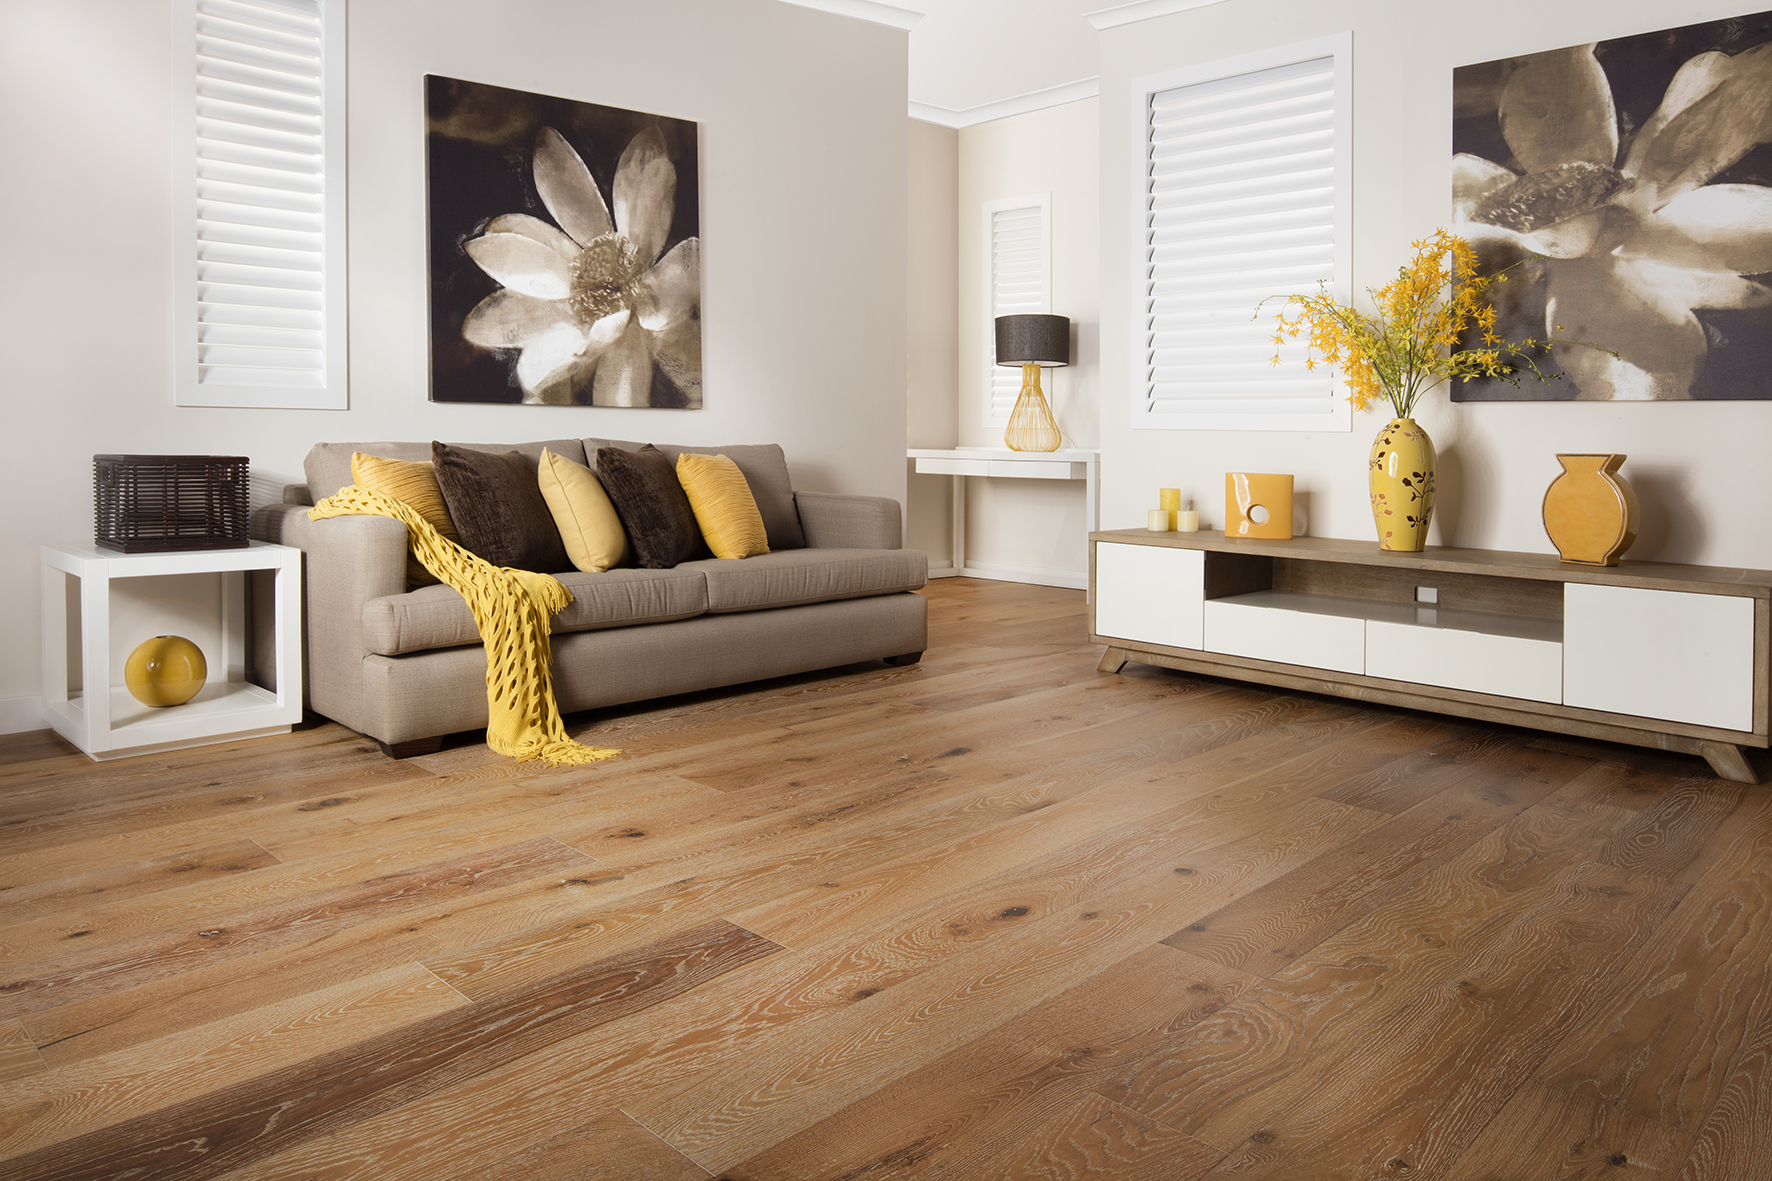 Why Should You Choose Wooden Flooring?